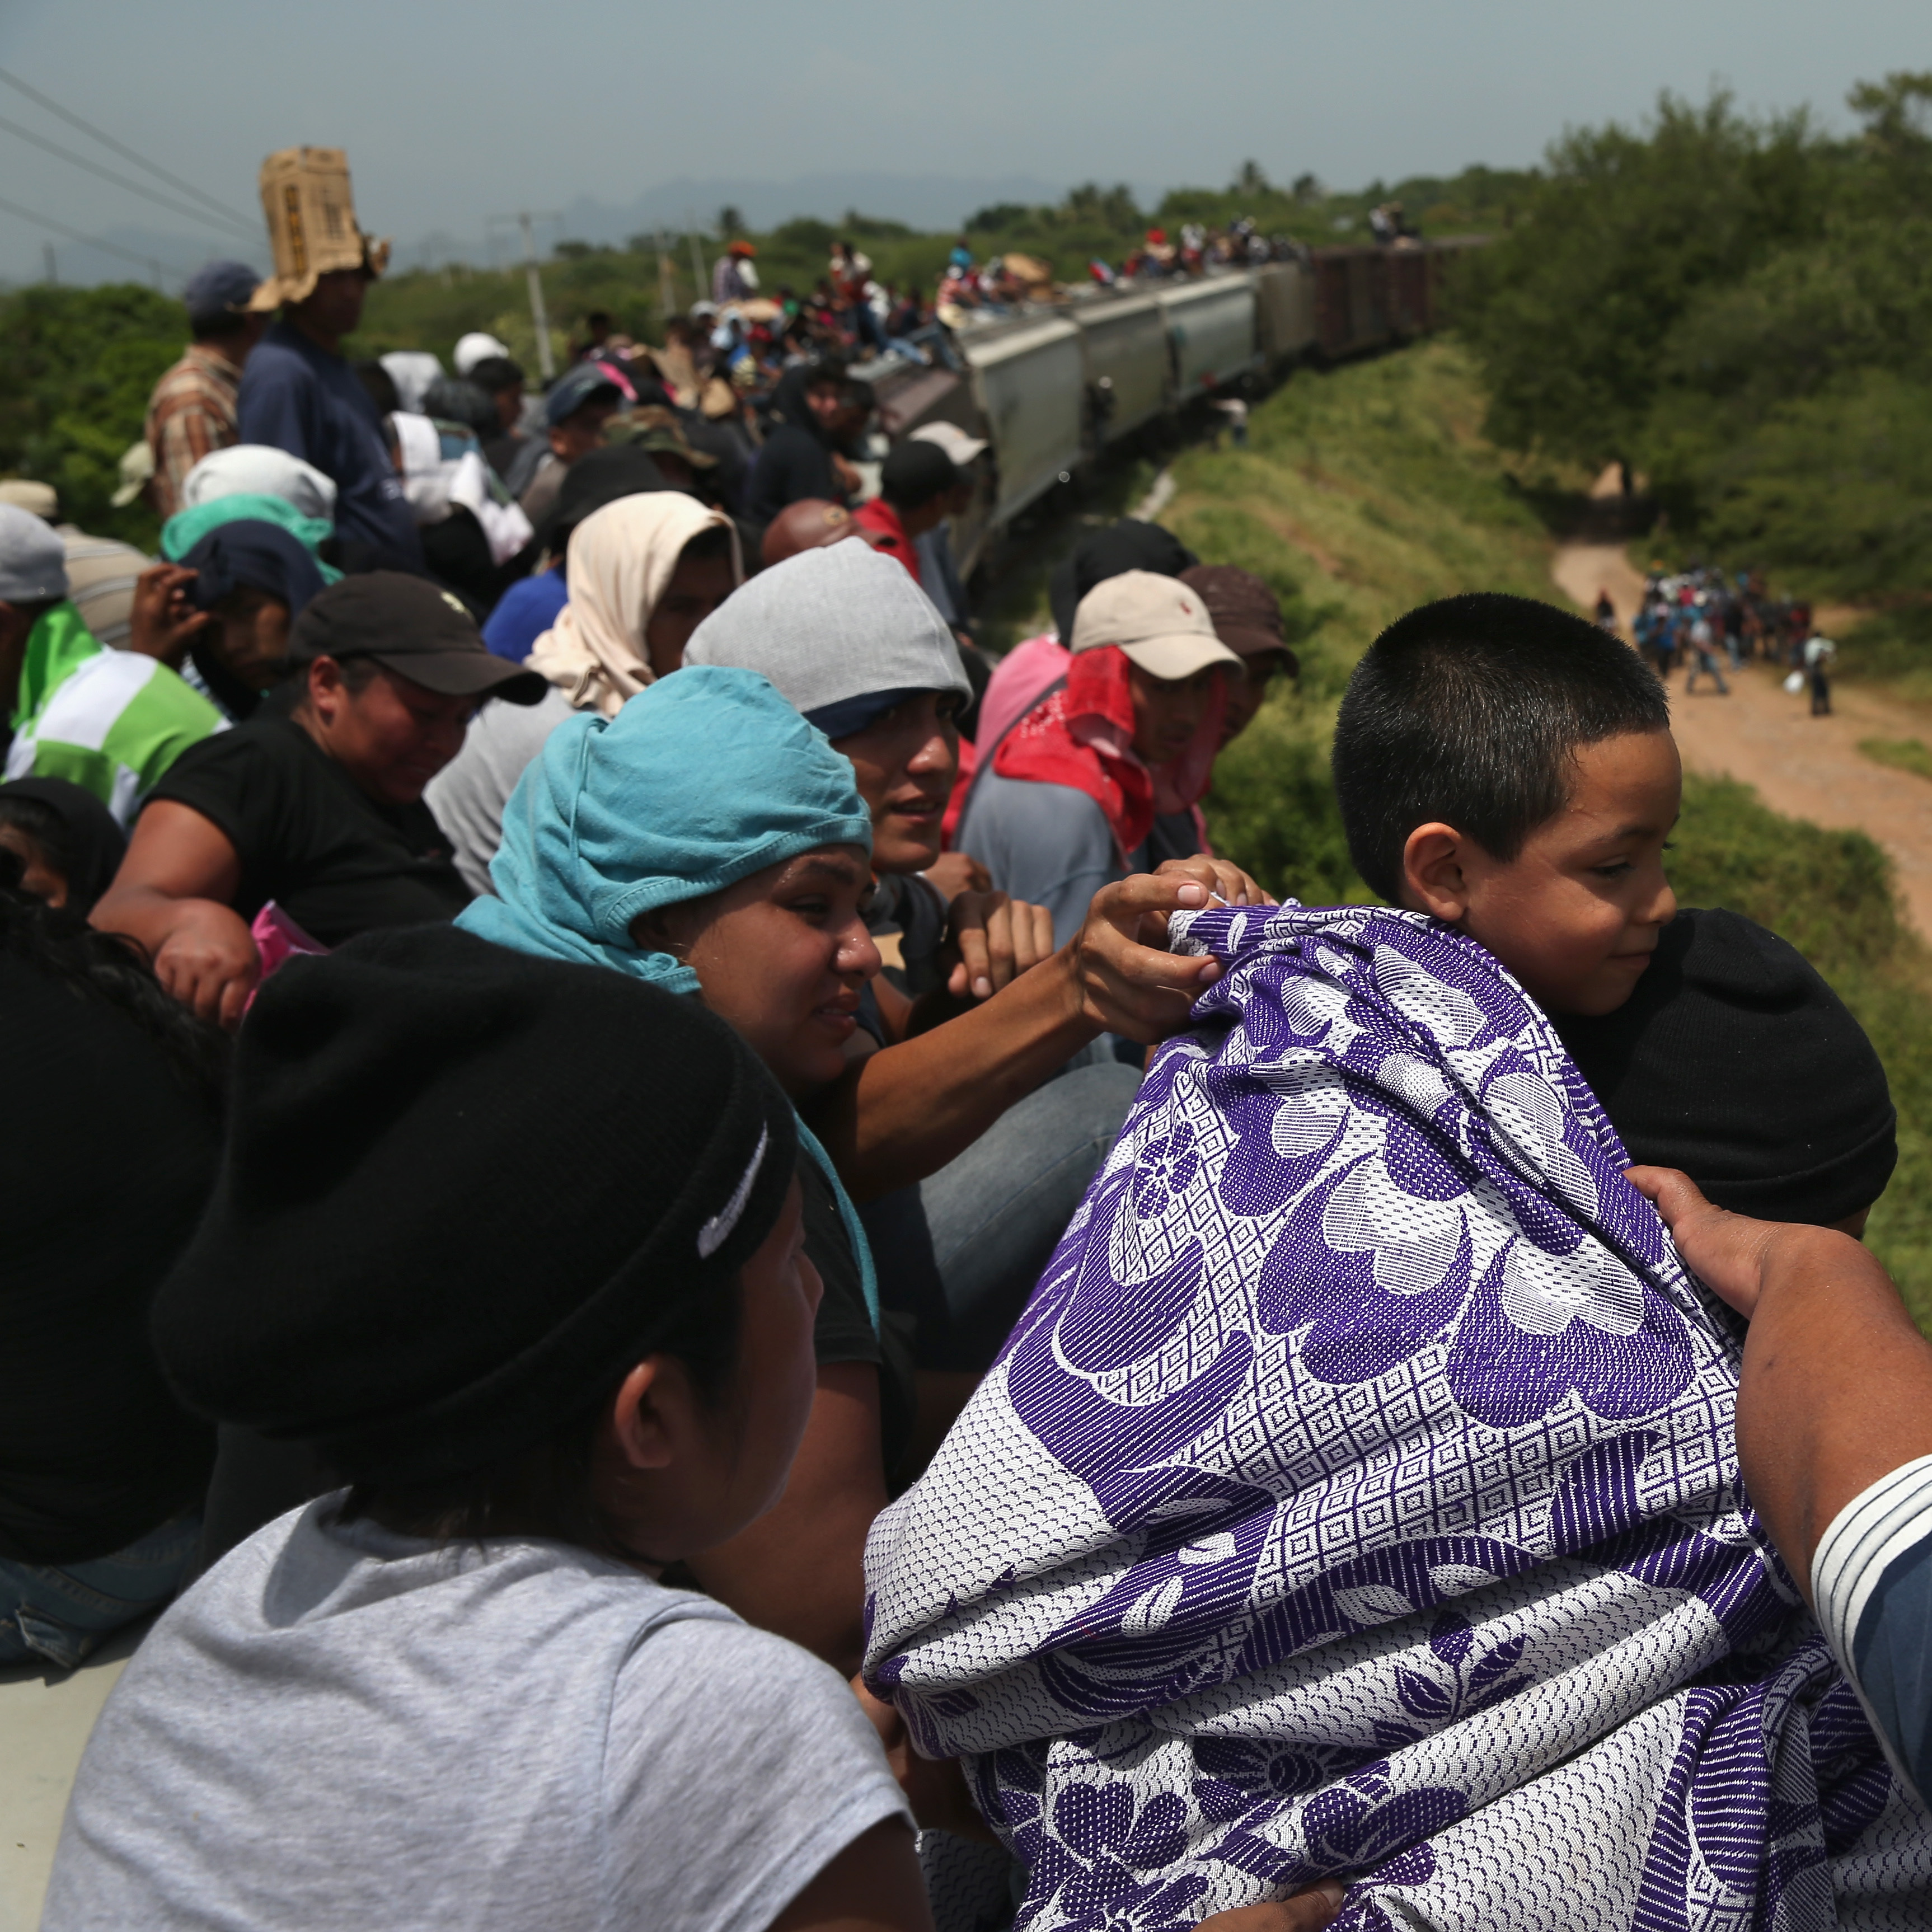 IXTEPEC, MEXICO -- Thousands of Central American migrants ride trains known as La Bestia (the beast) during their long and perilous journeys north through Mexico to the U.S. border.